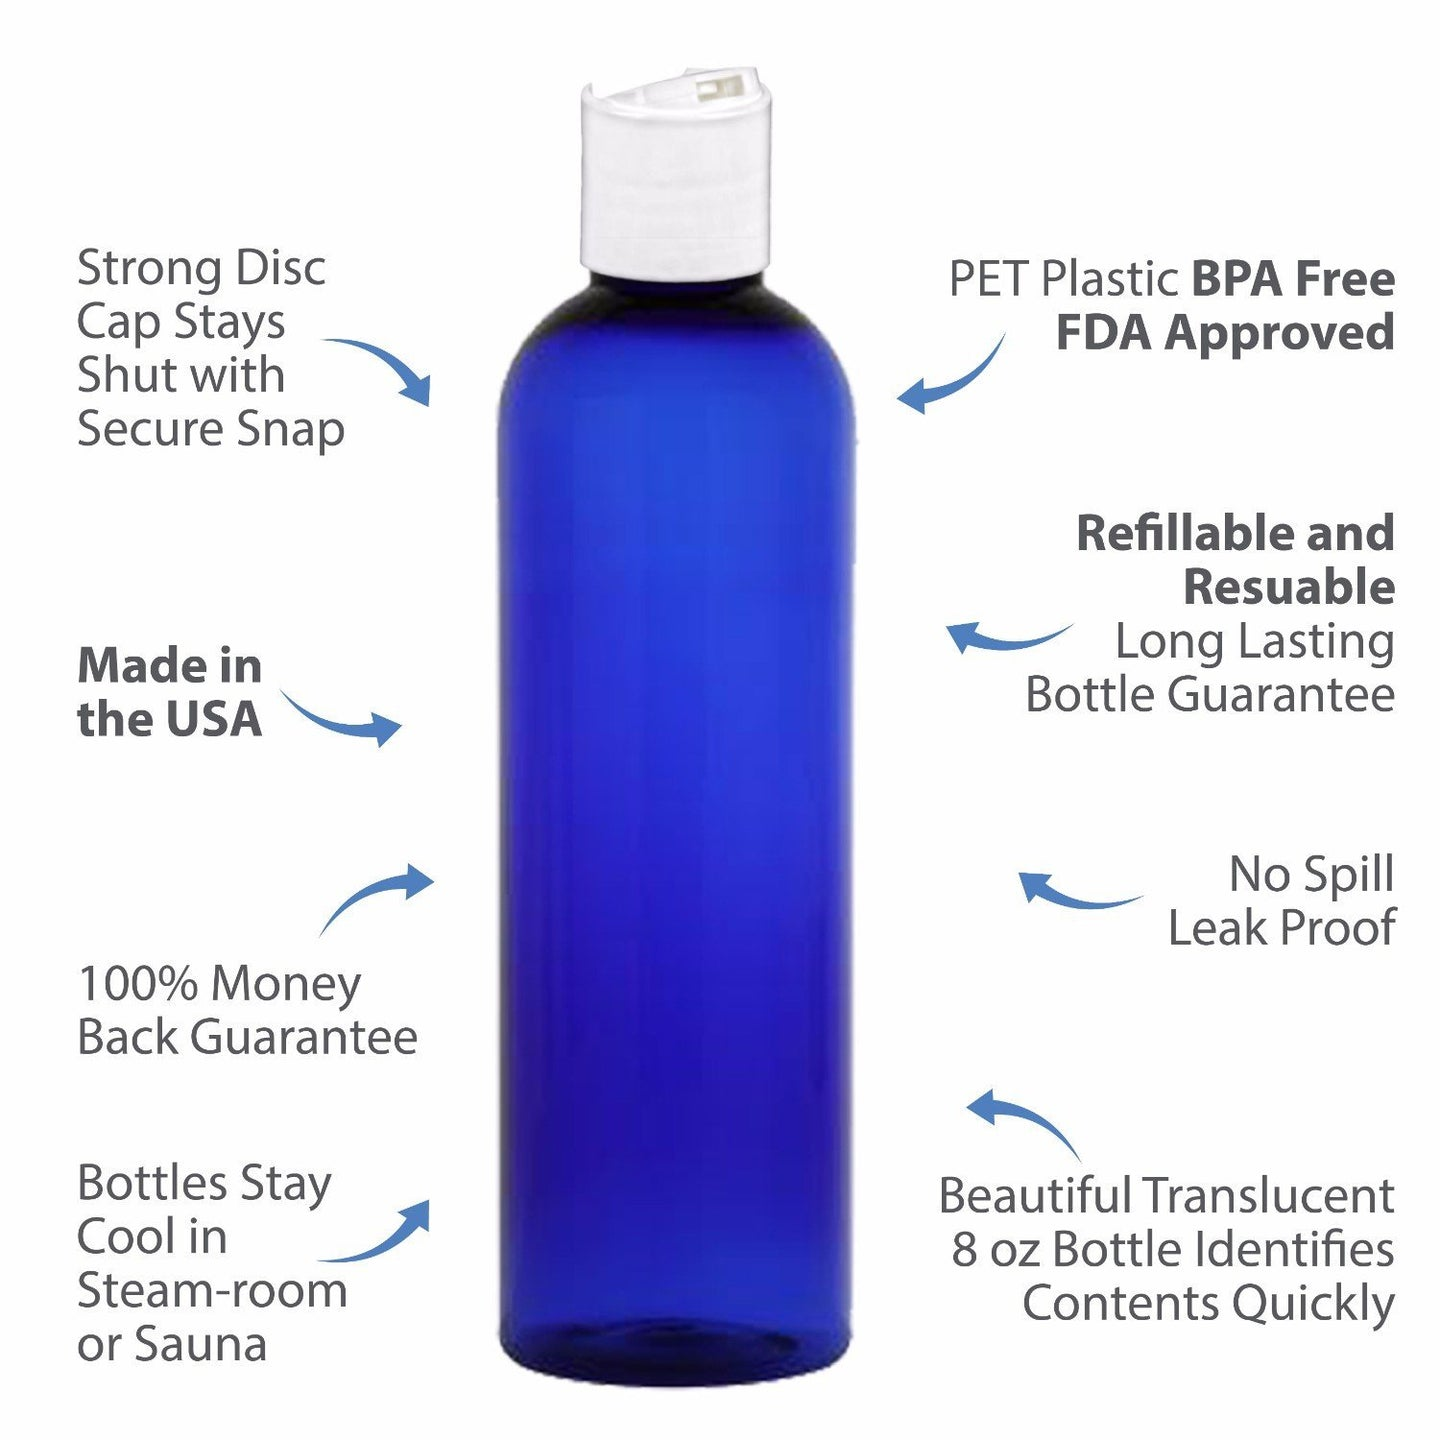 MoYo Natural Labs 4 oz Travel Bottles, Empty Travel Containers with Disc Caps, BPA Free PET Plastic Squeezable Toiletry/Cosmetic Bottles (Neck 24-410) (Pack of 12, Blue)